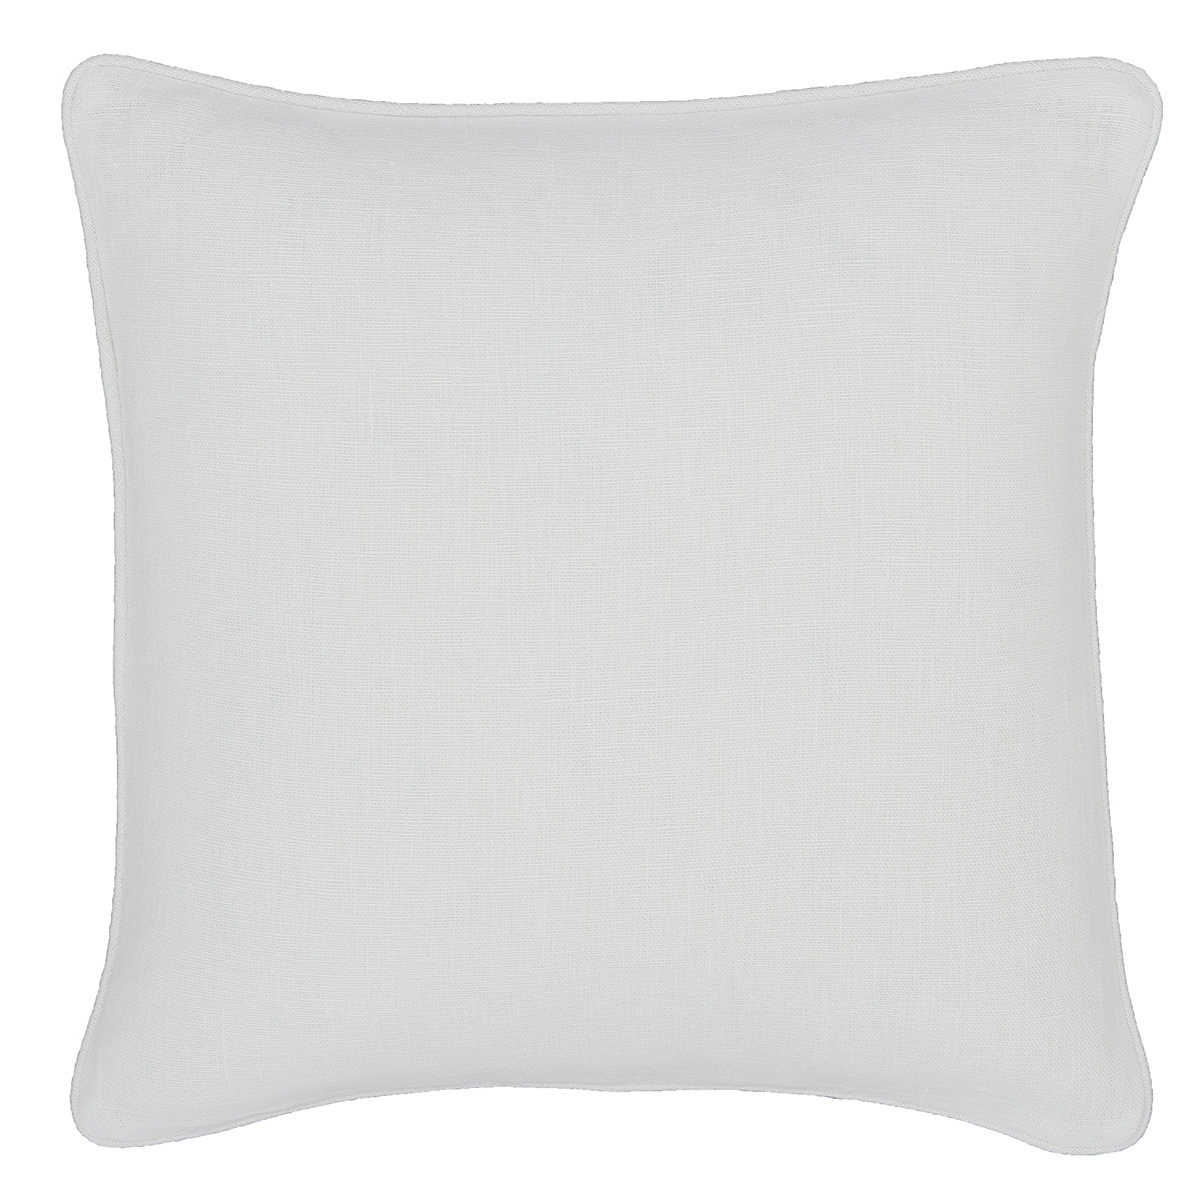 Stone Washed Linen White Decorative Pillow